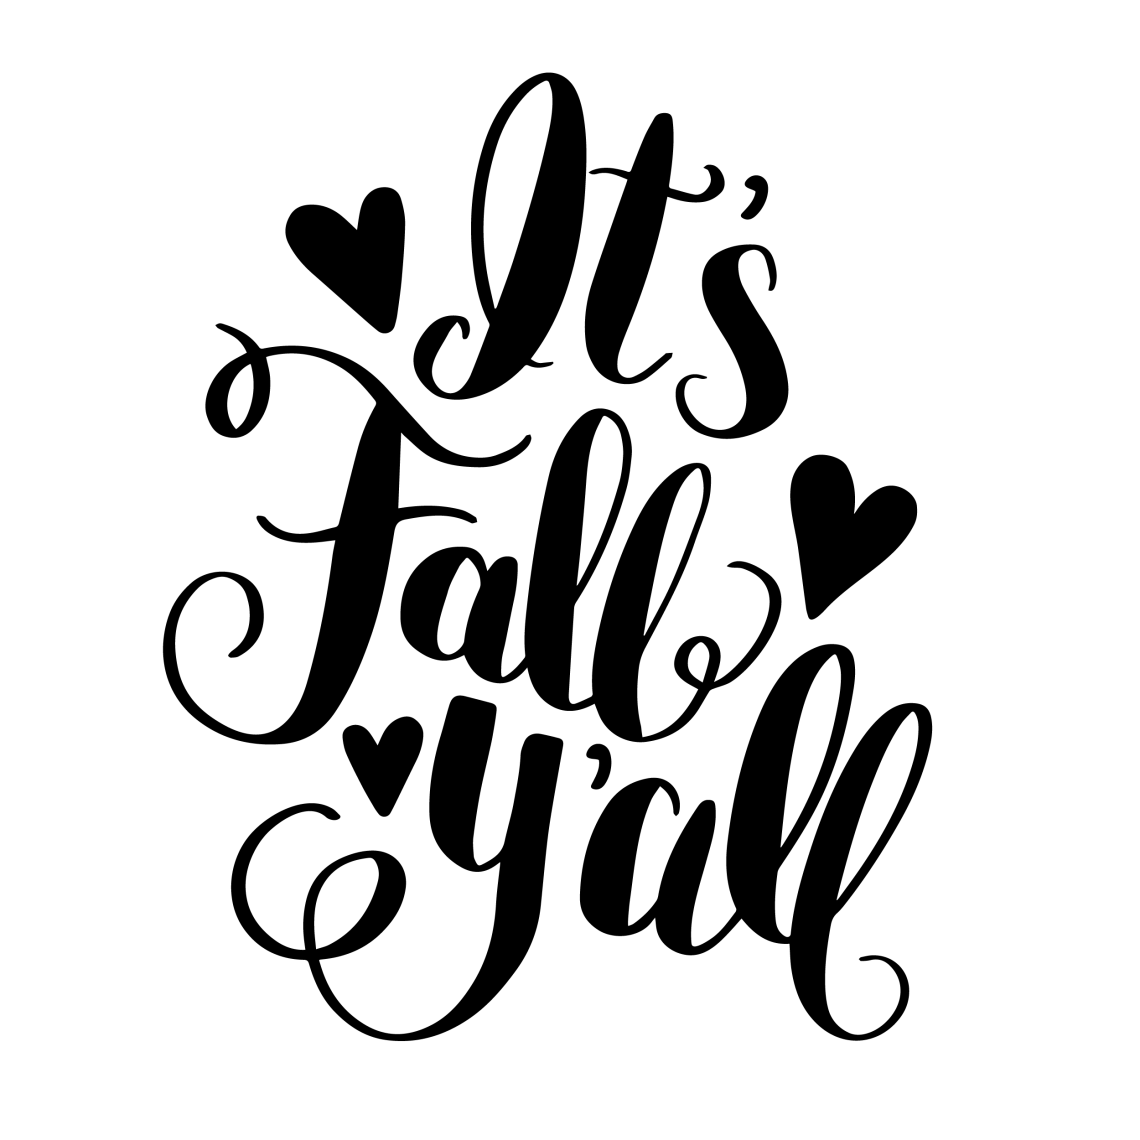 Download Fall svg, Download Fall svg for free 2019